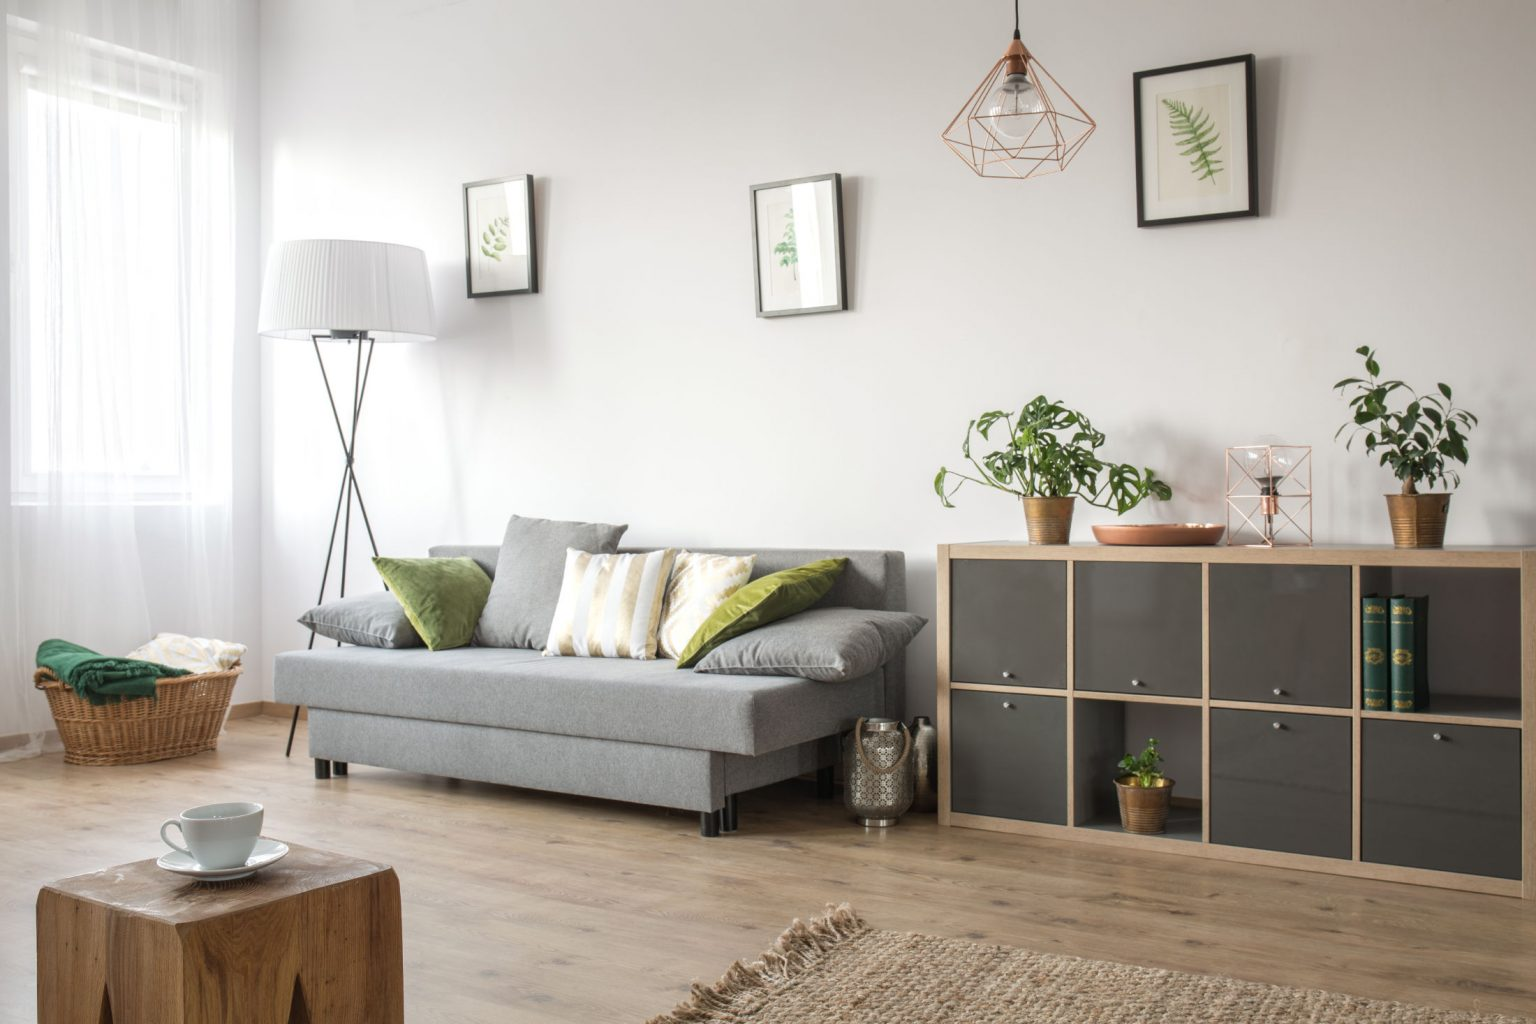 cozy-living-room-with-sofa-PS44YLE.jpg